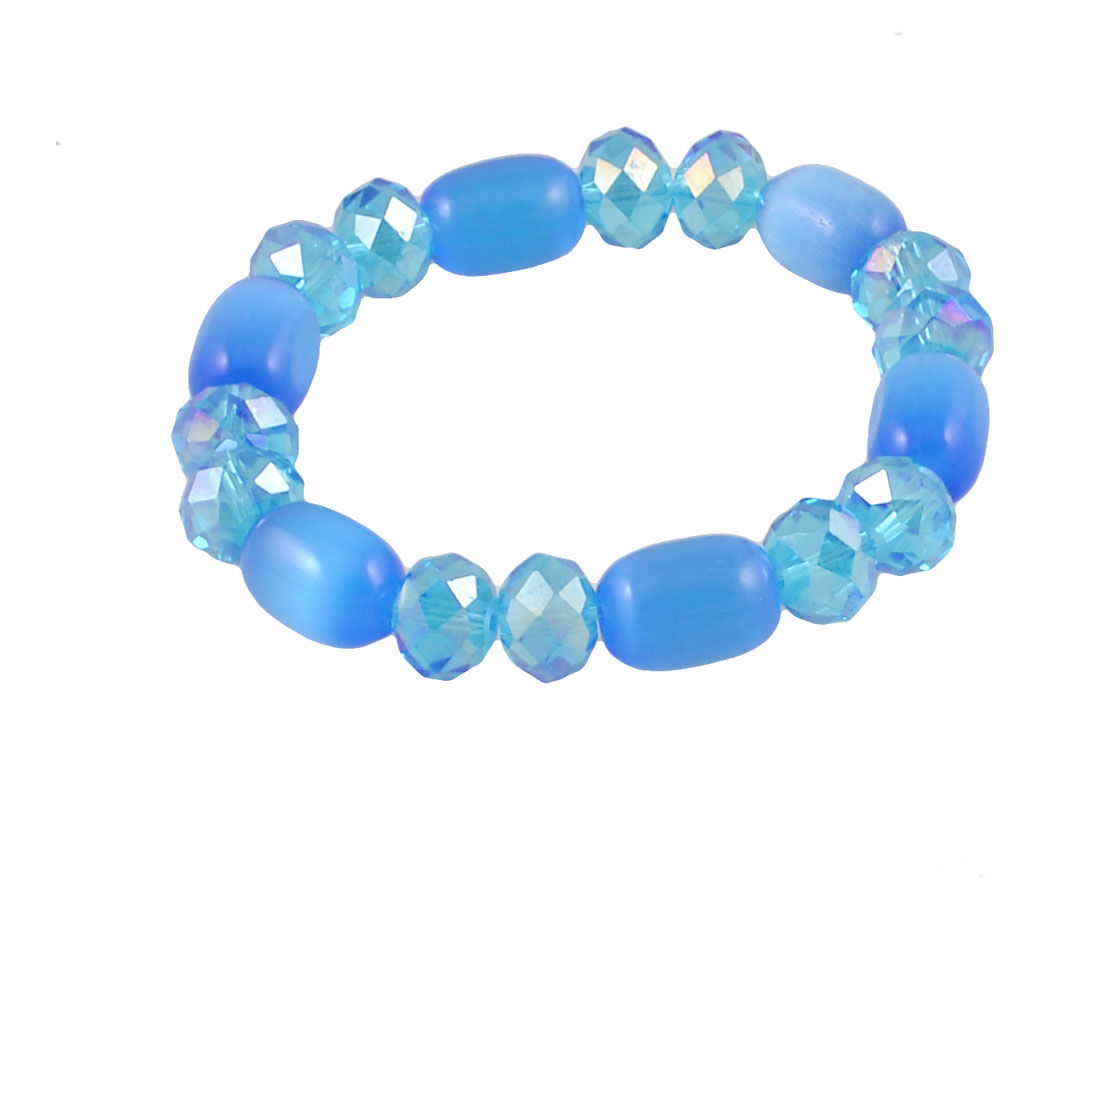 Clear Blue Glitter Faceted Beads Stretchy Bracelets Bangle for Woman